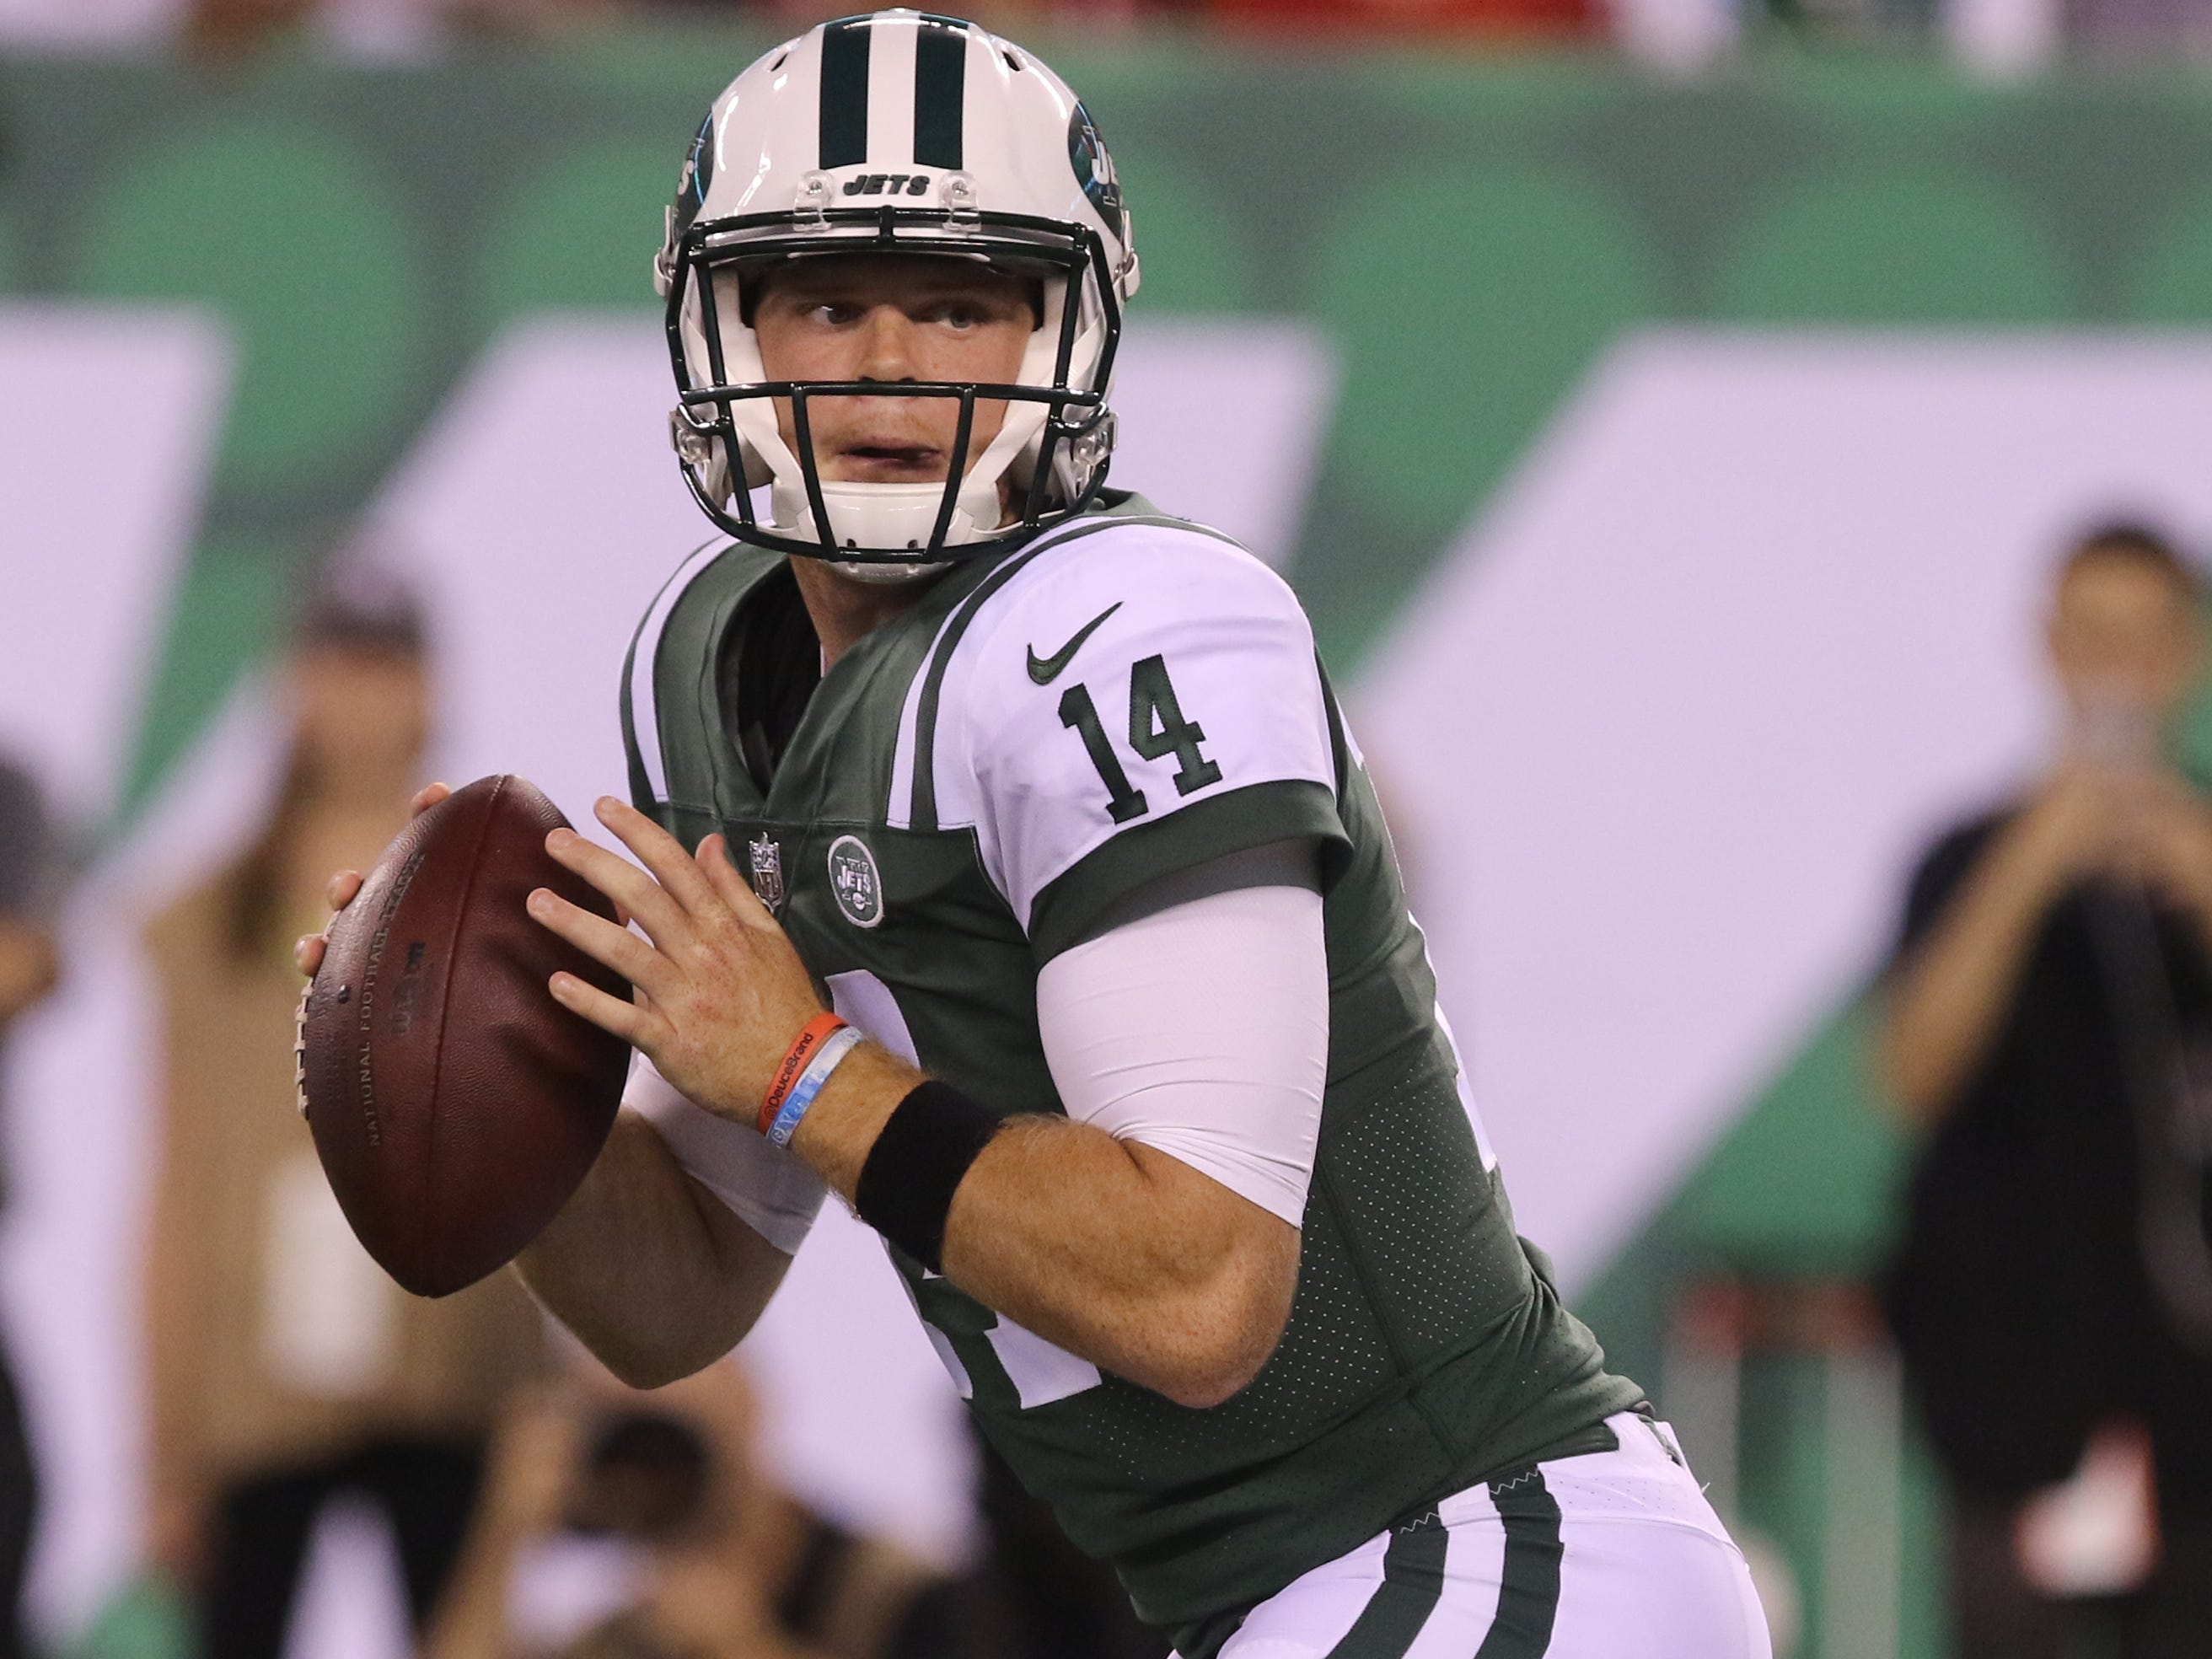 Sam Darnold during his first series as quarterback in  the preseason game against the Atlanta Falcons on Friday, Aug. 10, 2018 at MetLife Stadium, East Rutherford.